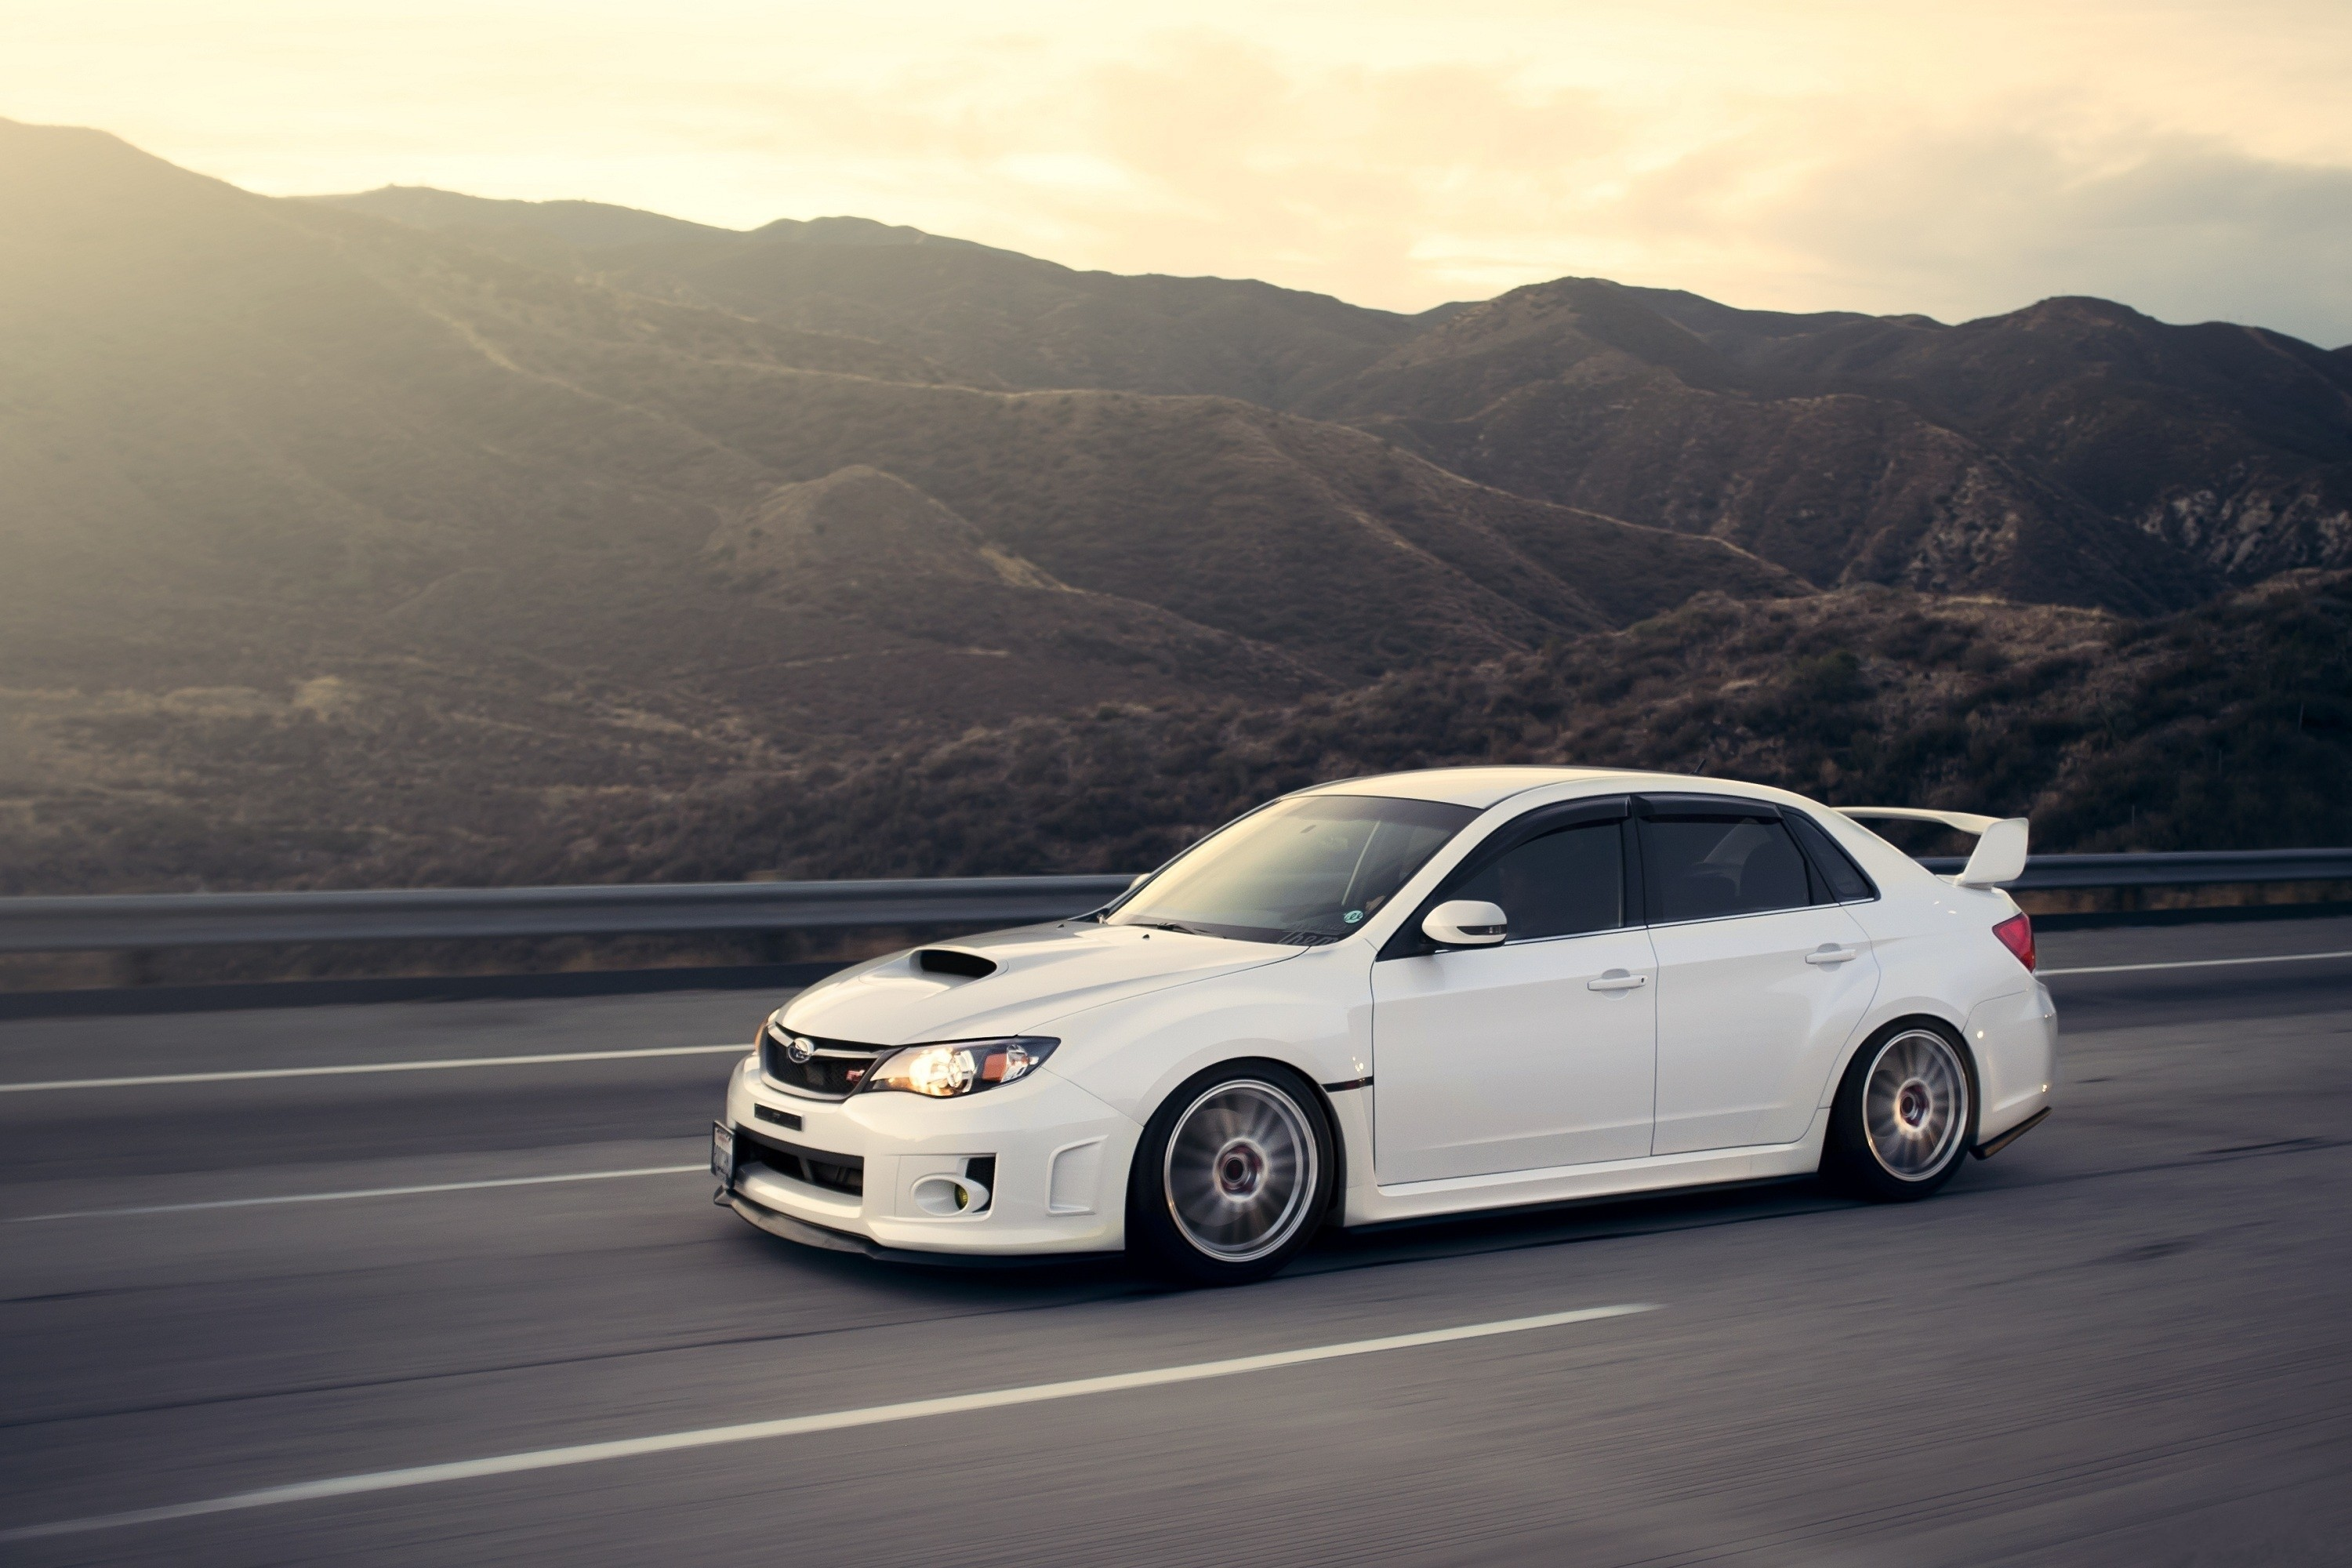 Subaru Impreza Wrx Sti Cars Mountains White Wallpaper Allwallpaper